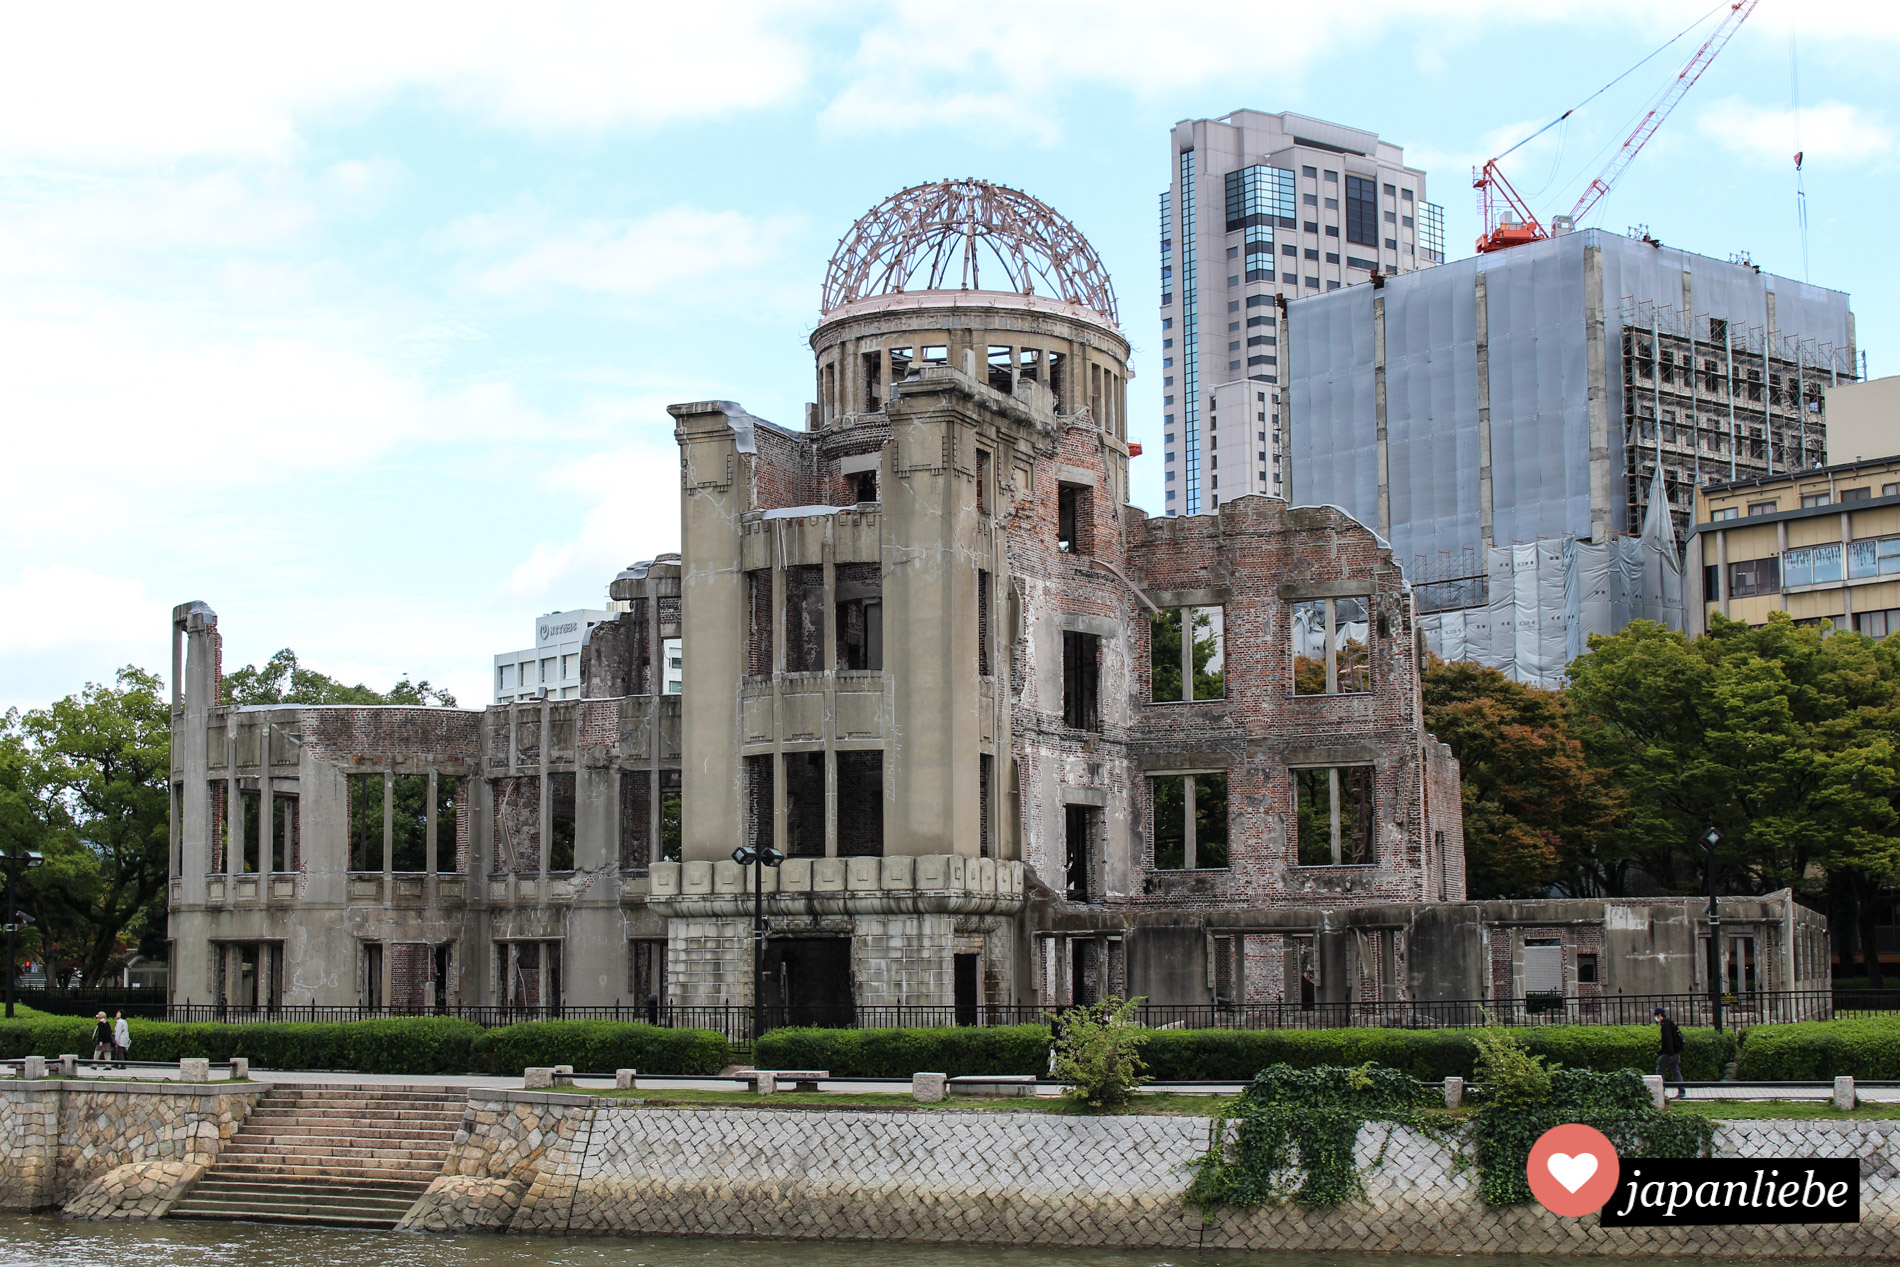 Trauriges Mahnmal: der A-Bomb-Dome in Hiroshima